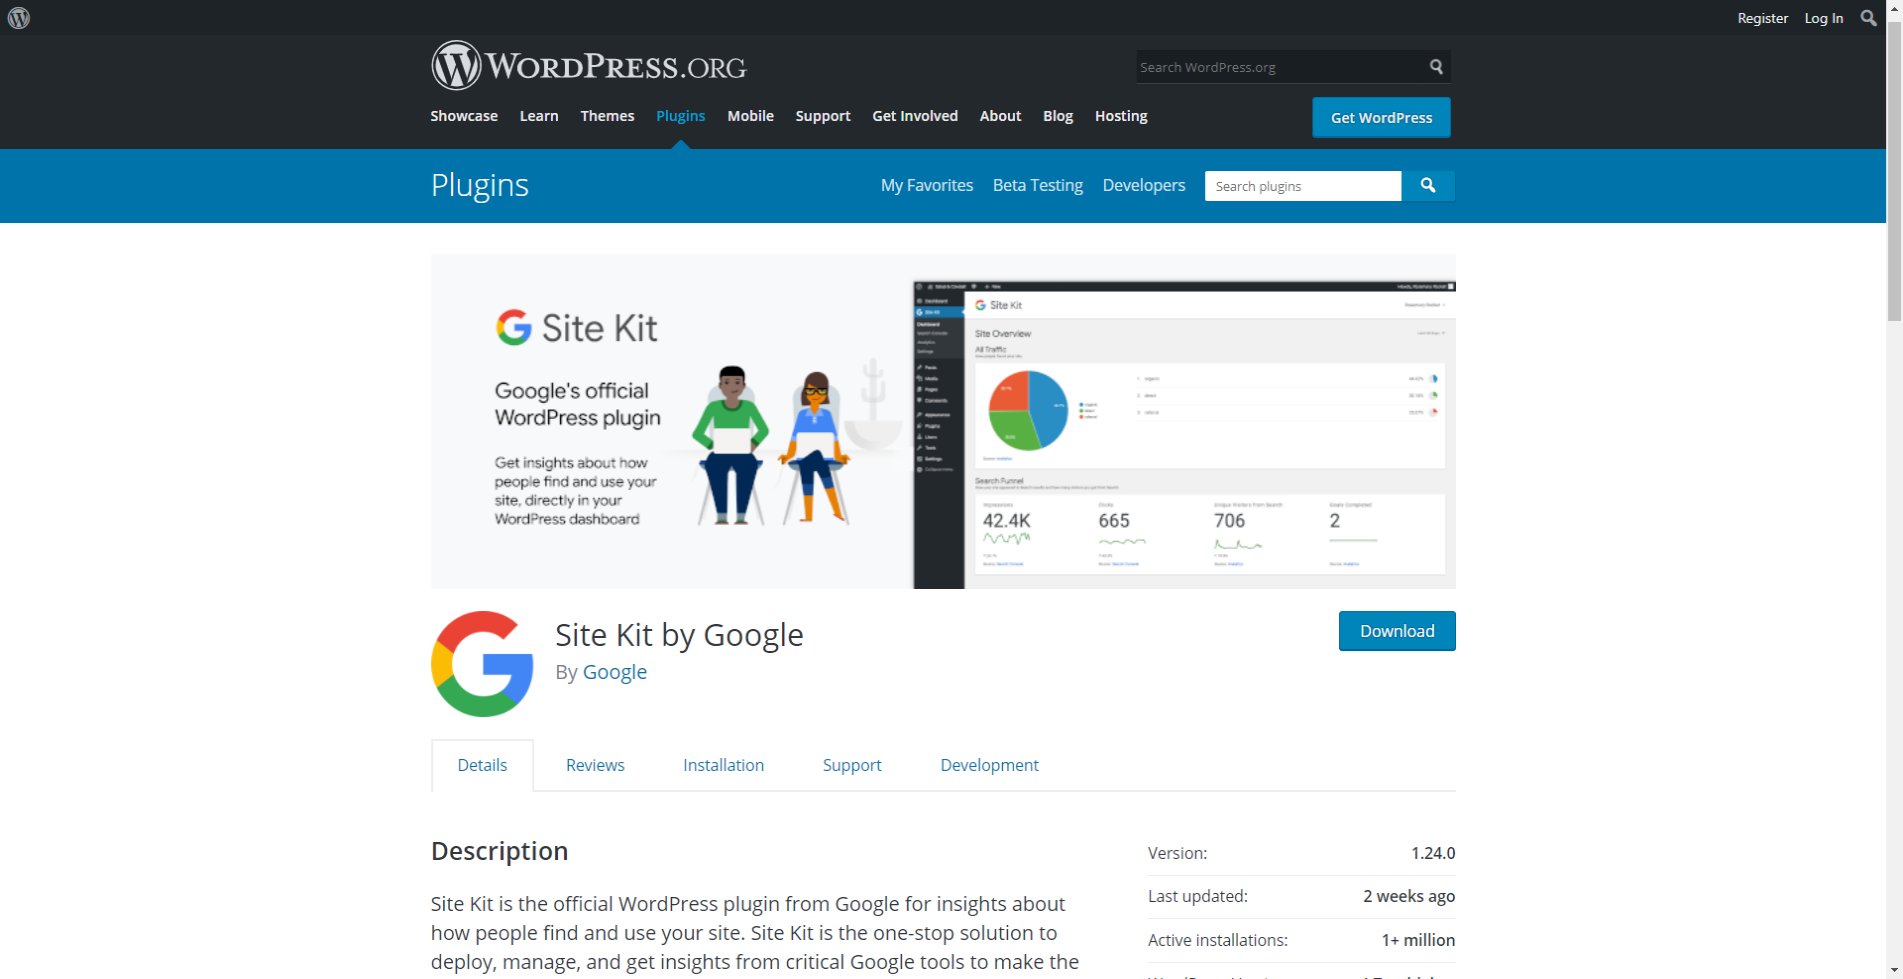 Site kit by Google plugin page